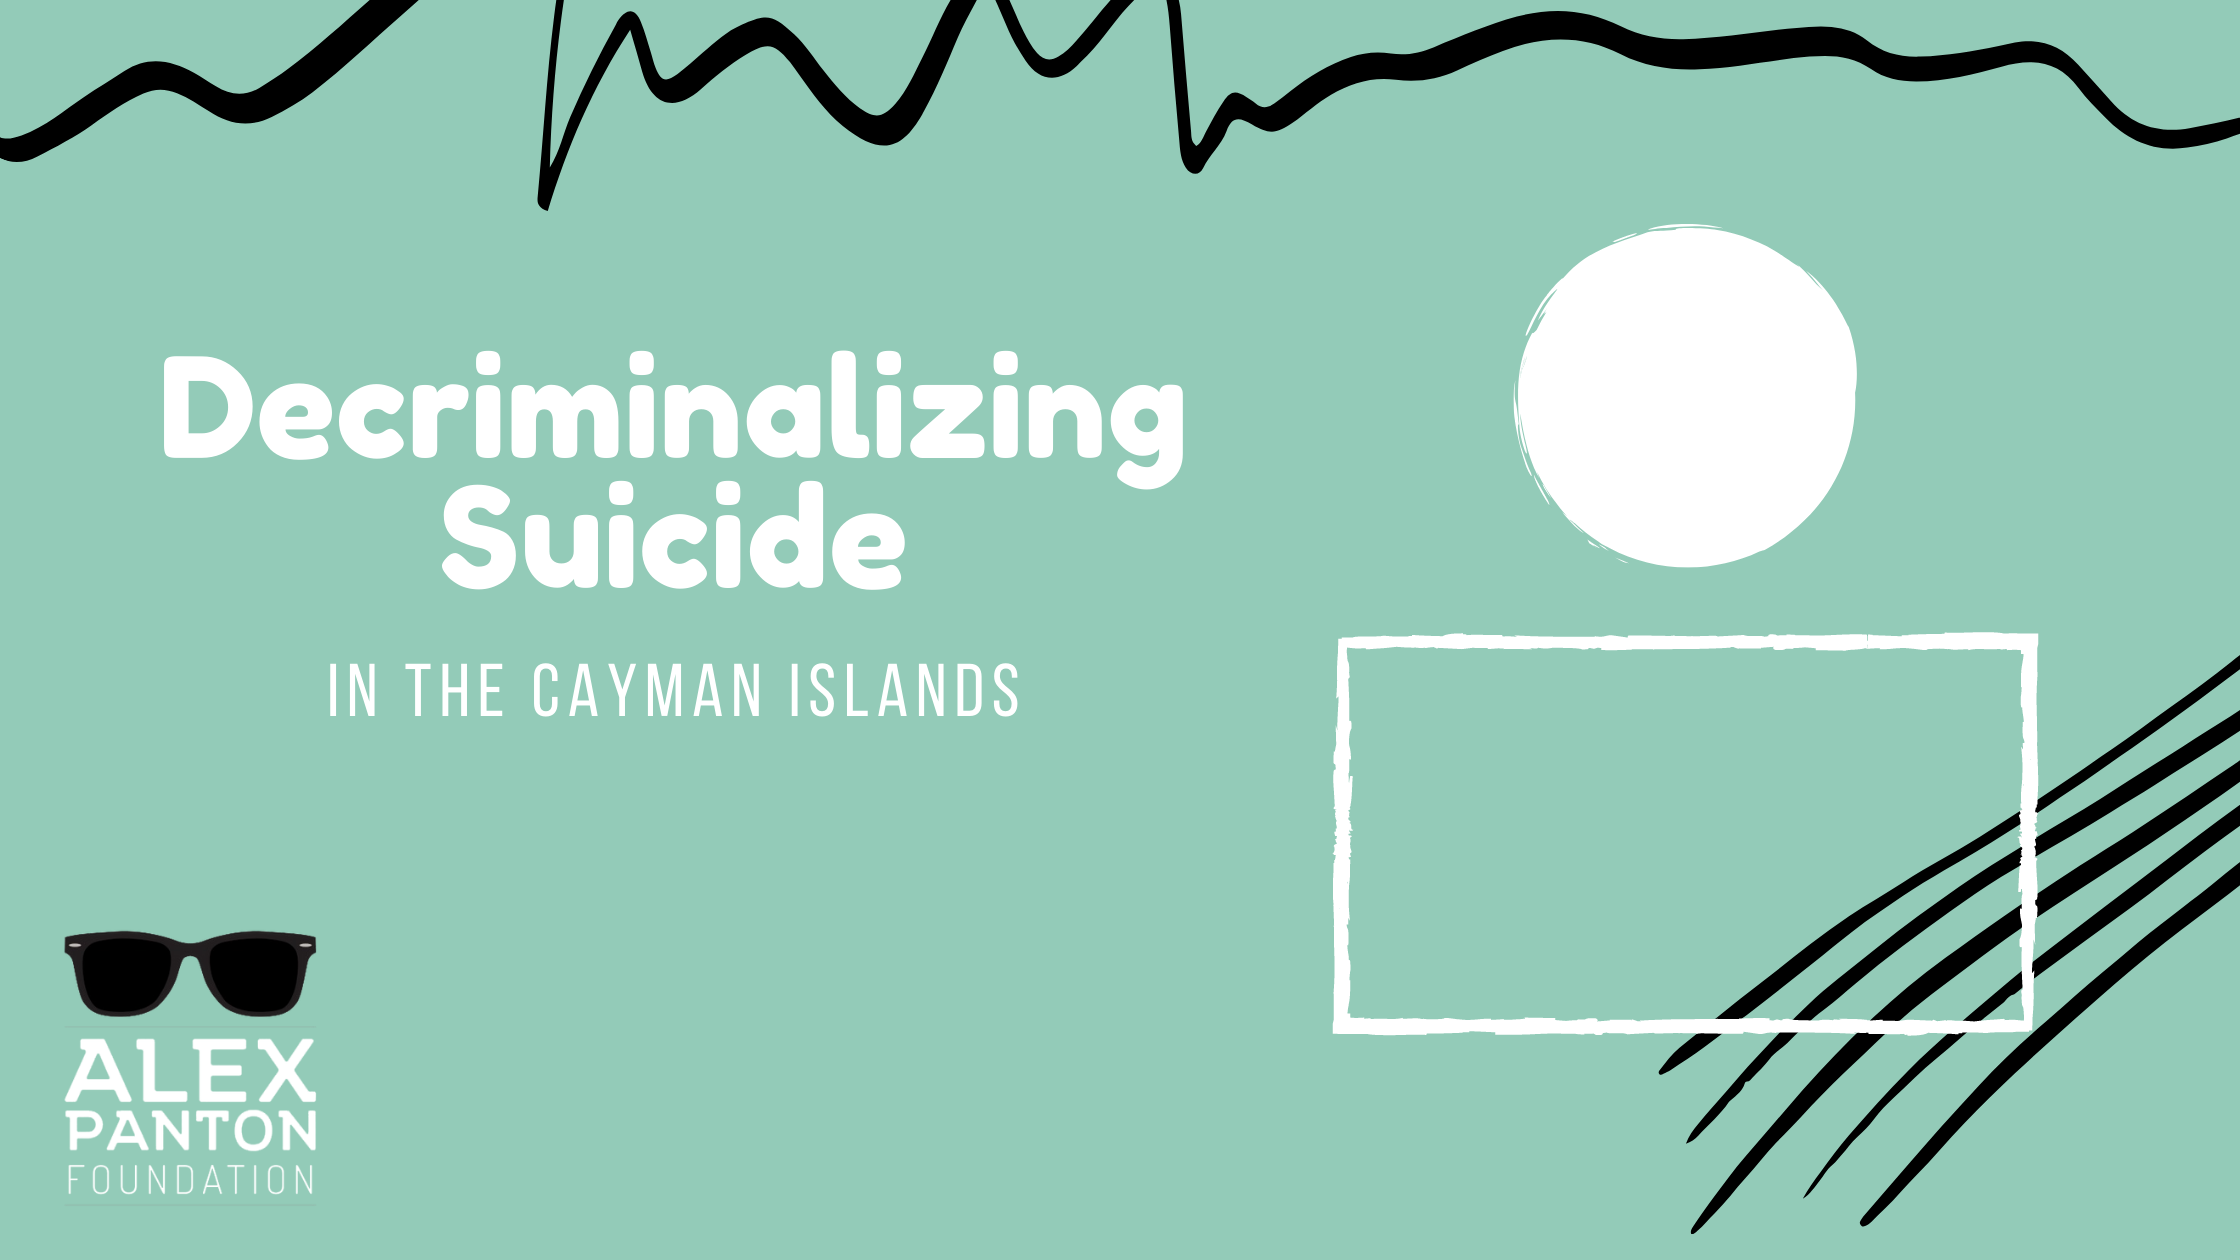 Decriminalizing Suicide in the Cayman Islands